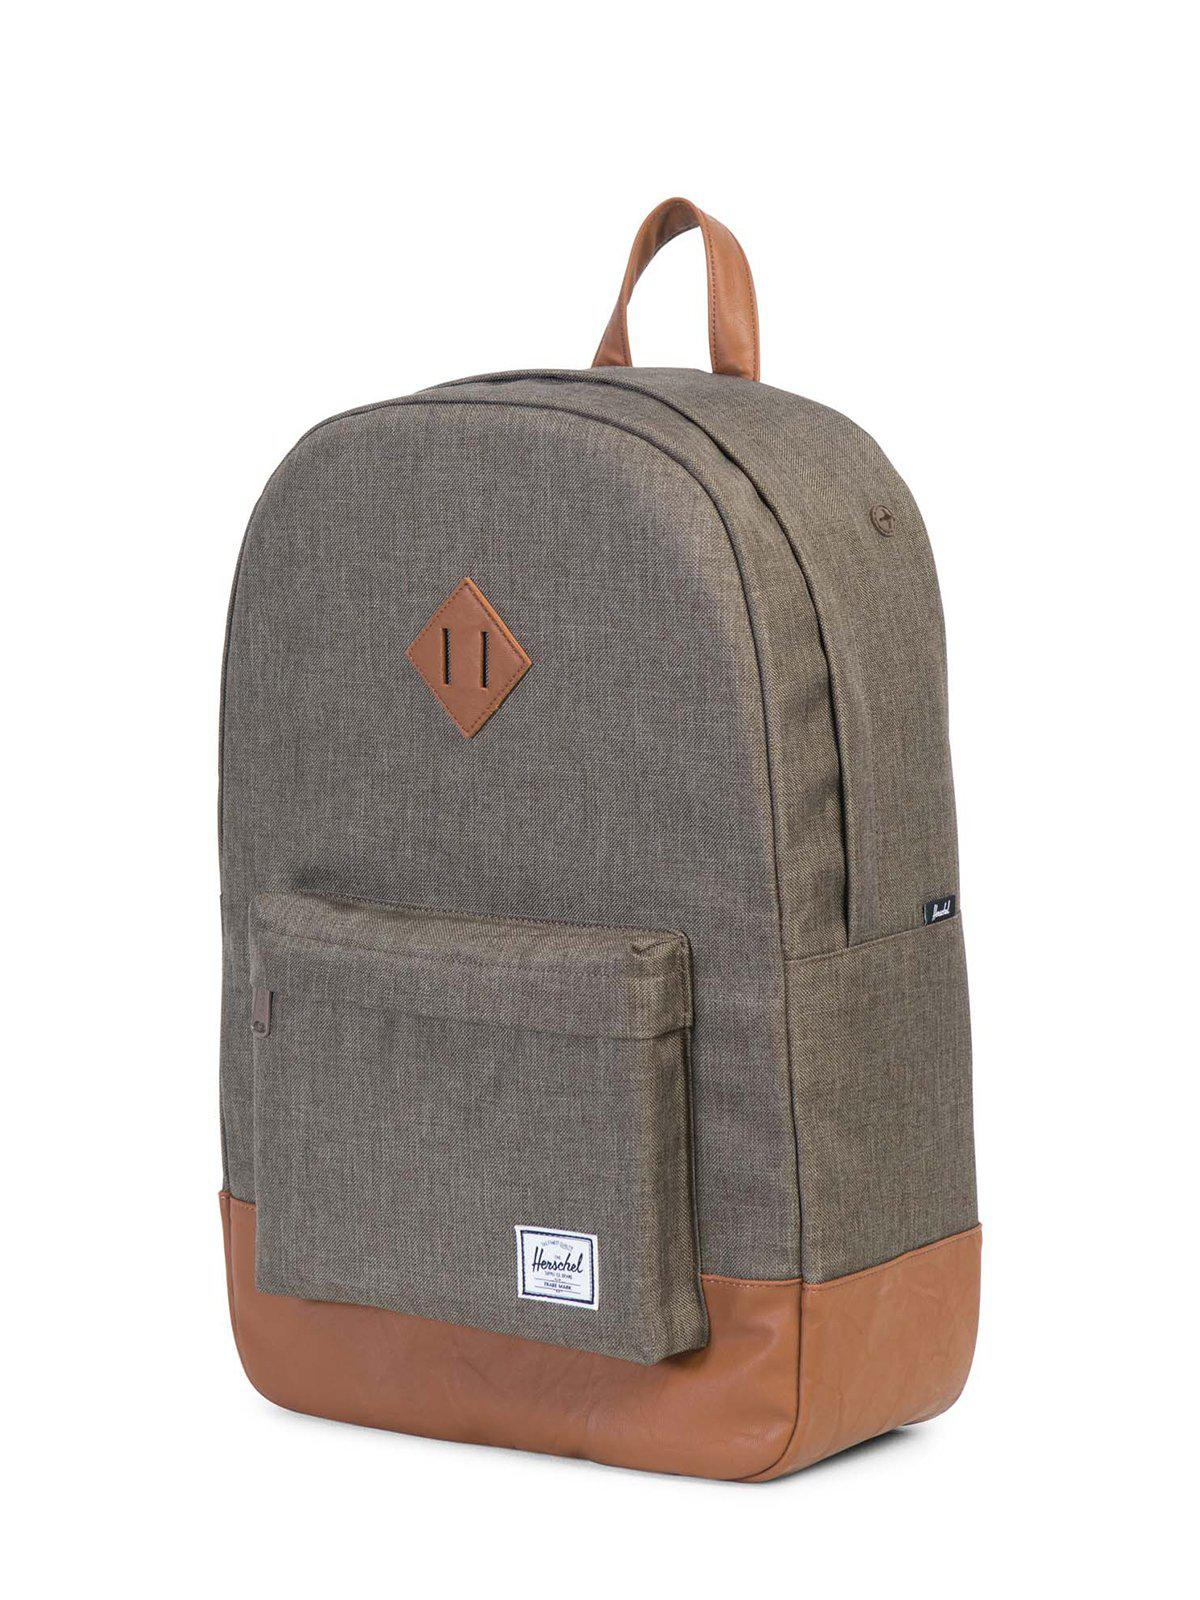 Herschel Heritage Backpack 600D Poly Canteen Crosshatch Tan 21.5L 478dfc7a2c641